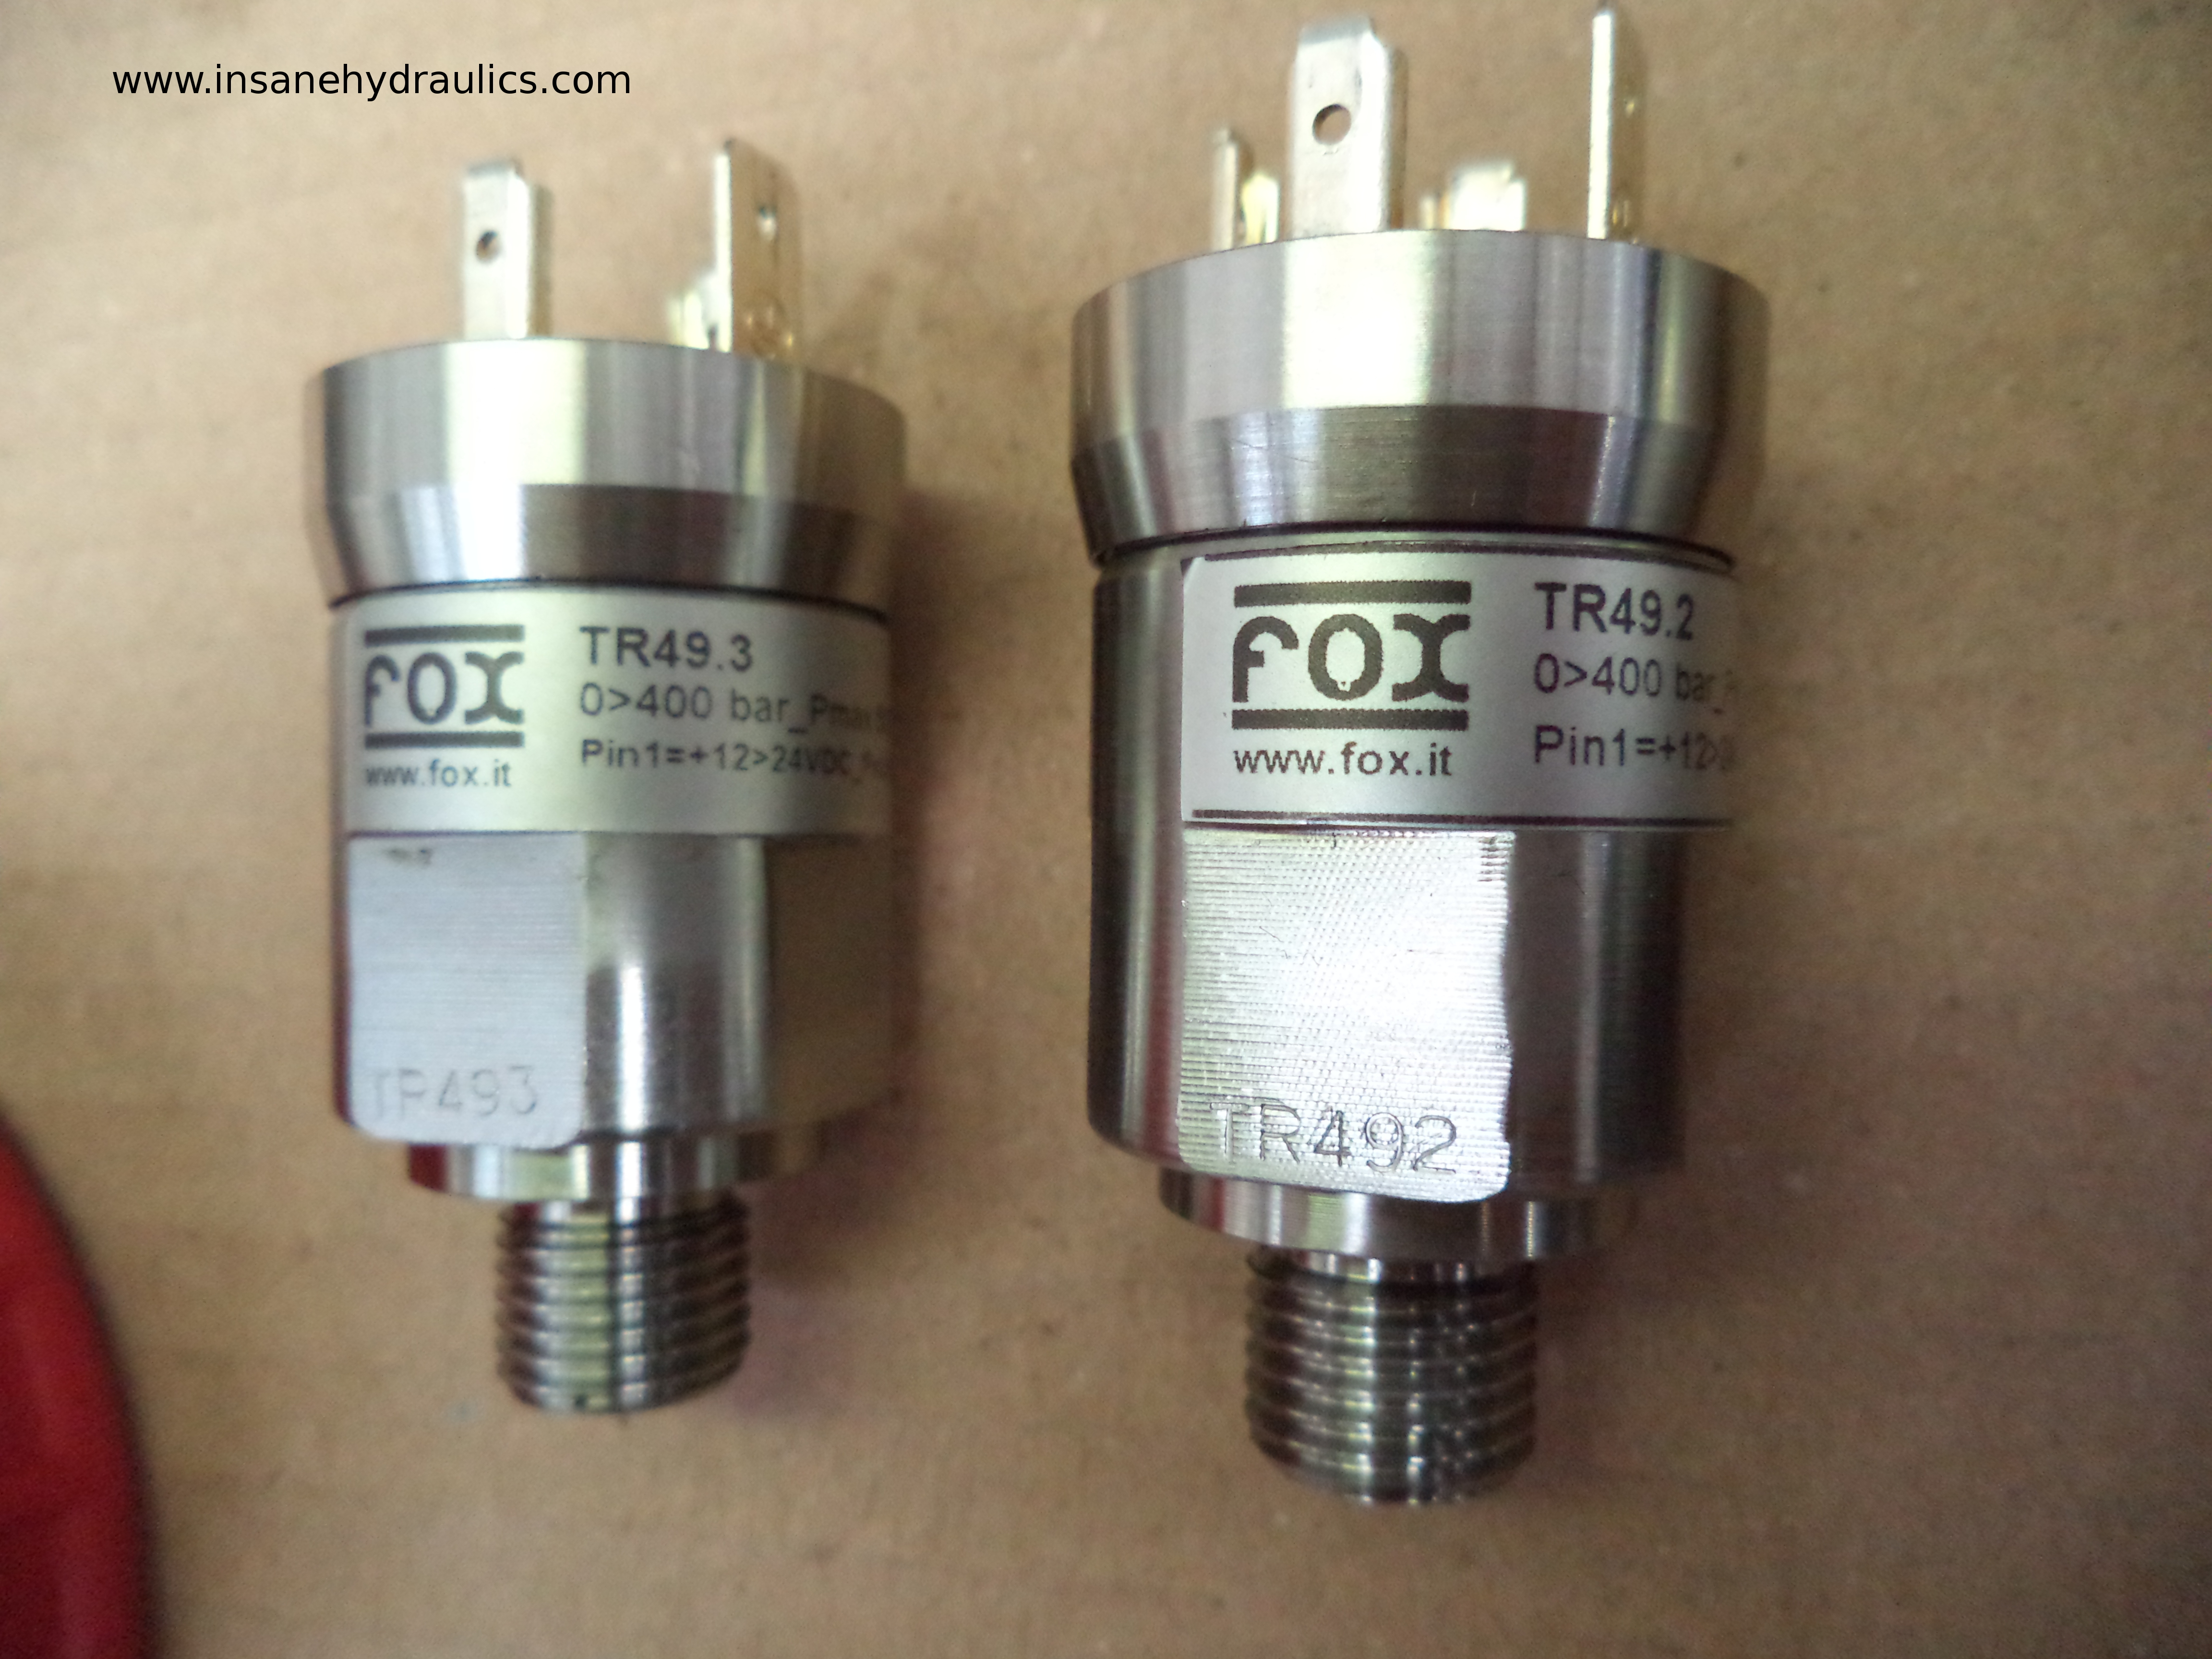 Comparison Test of Common Industrial Pressure Transmitters